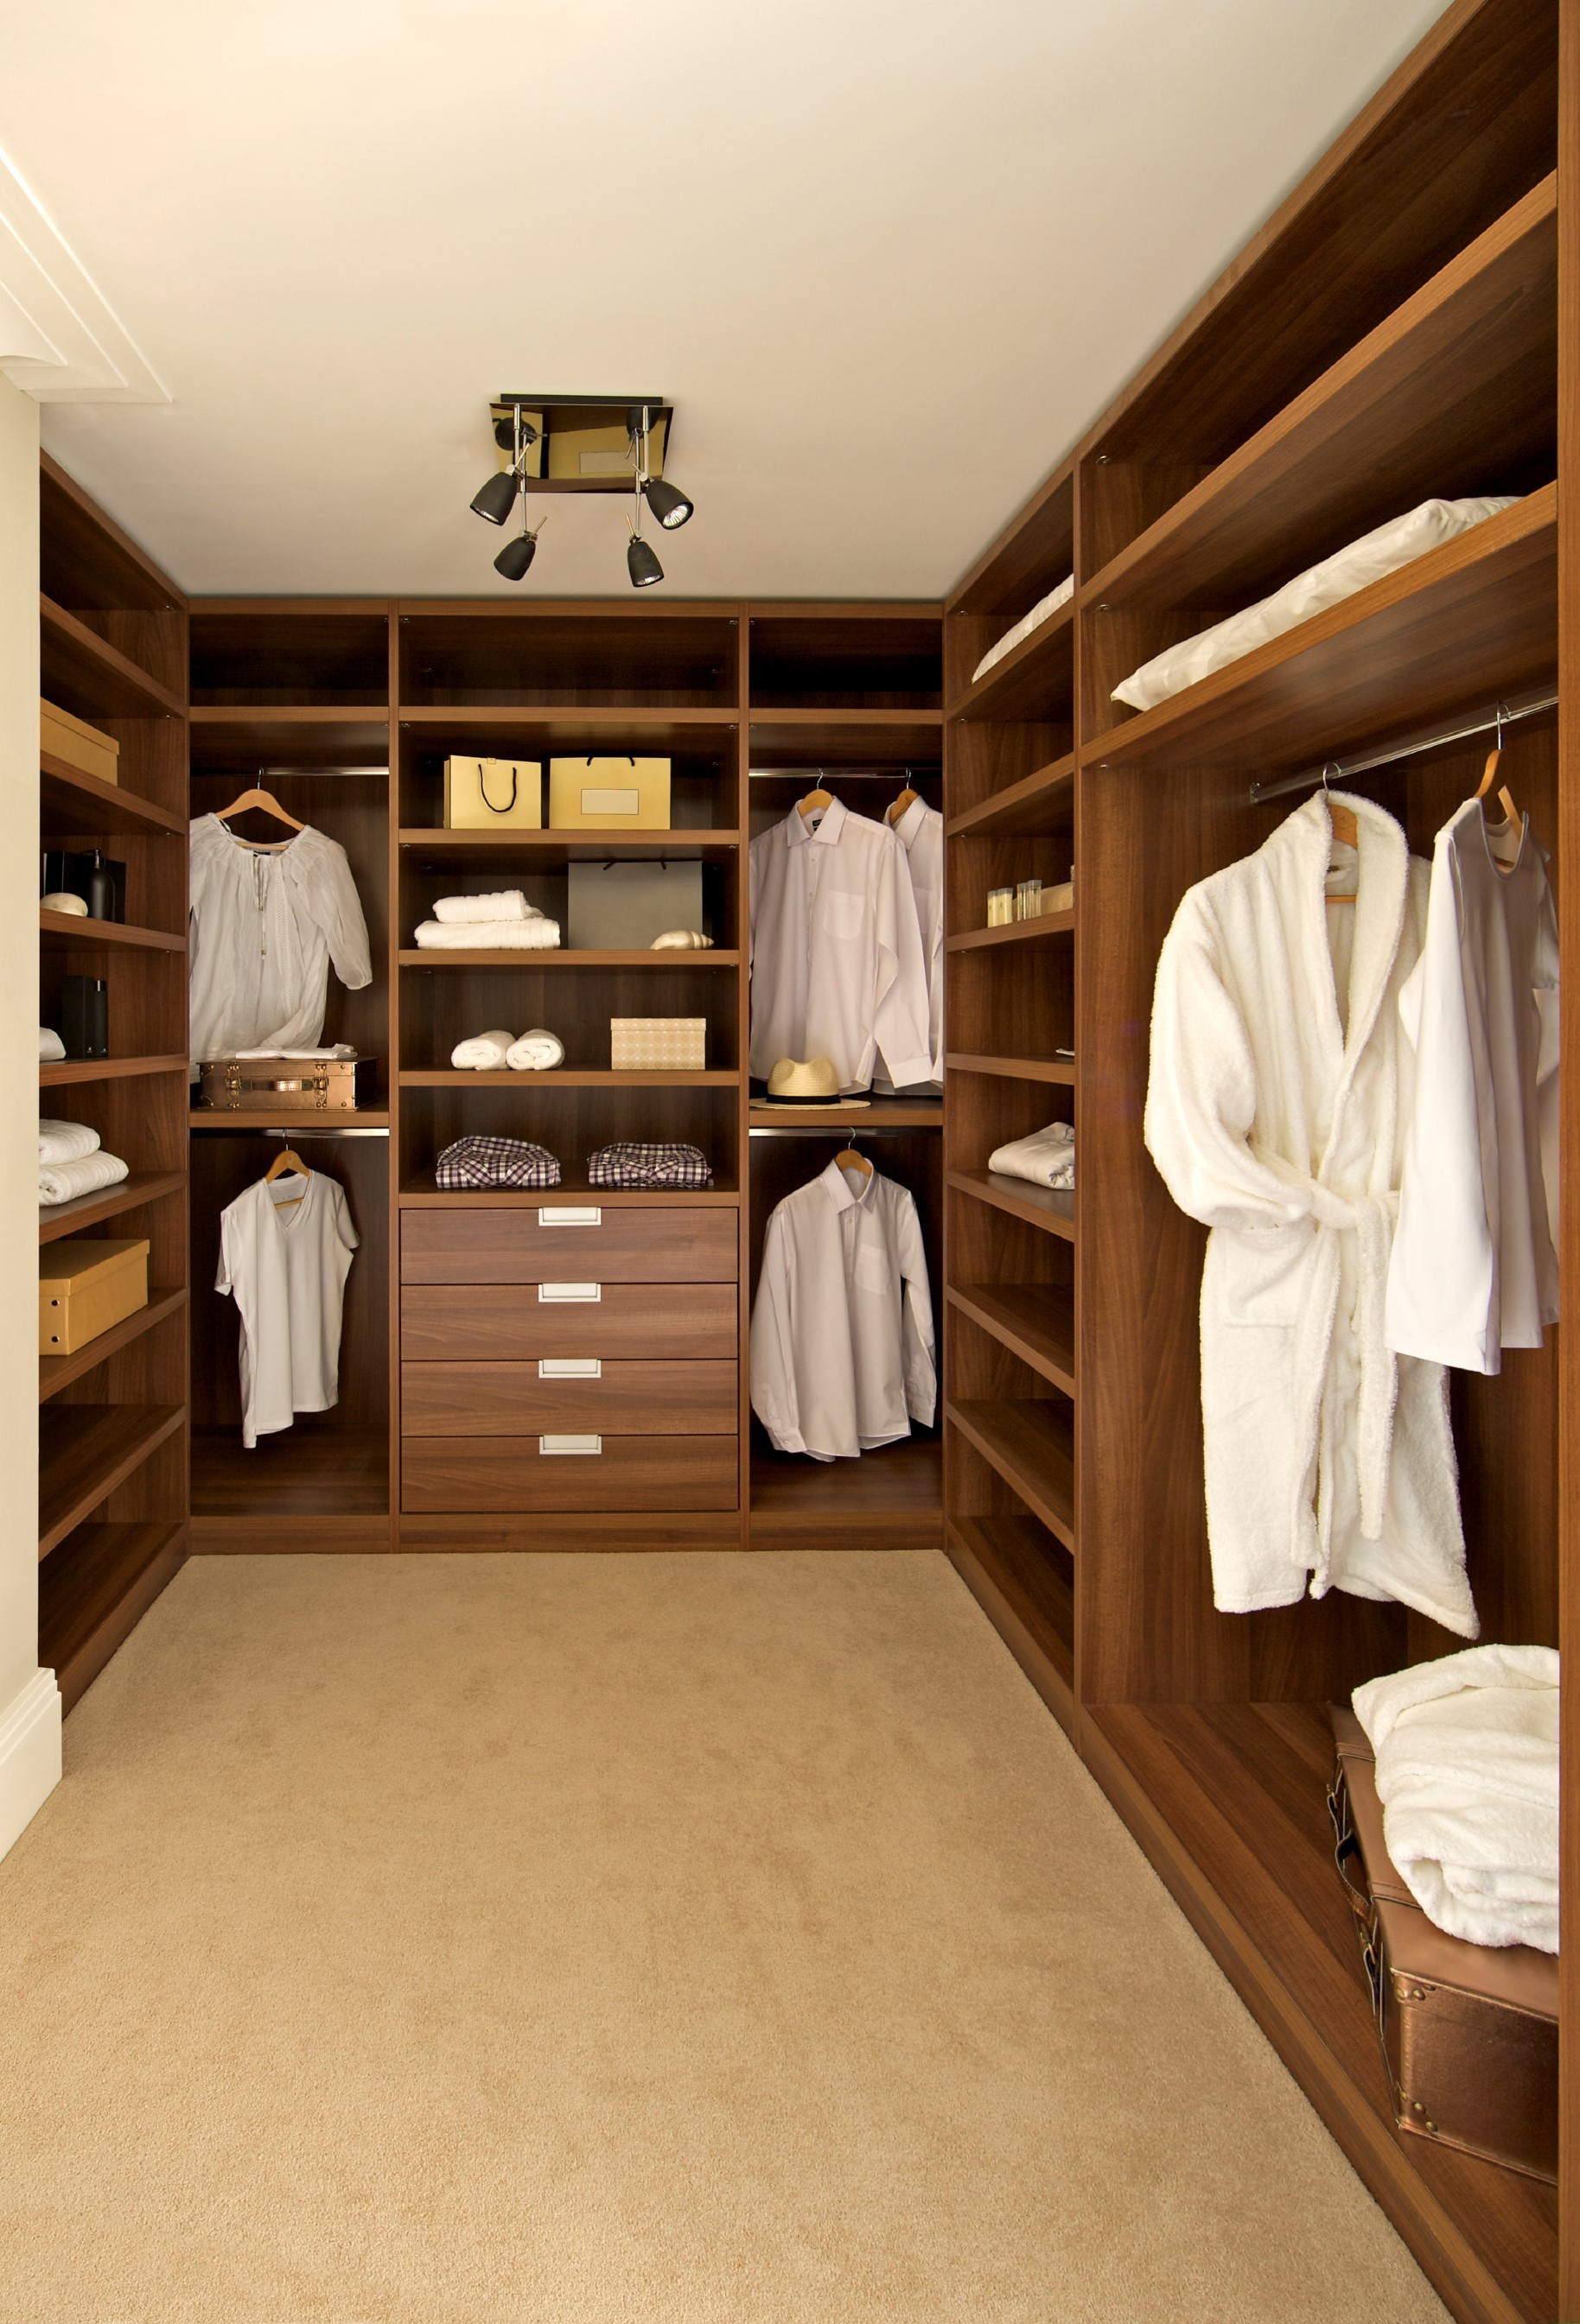 3 examples of beautiful bespoke wardrobes